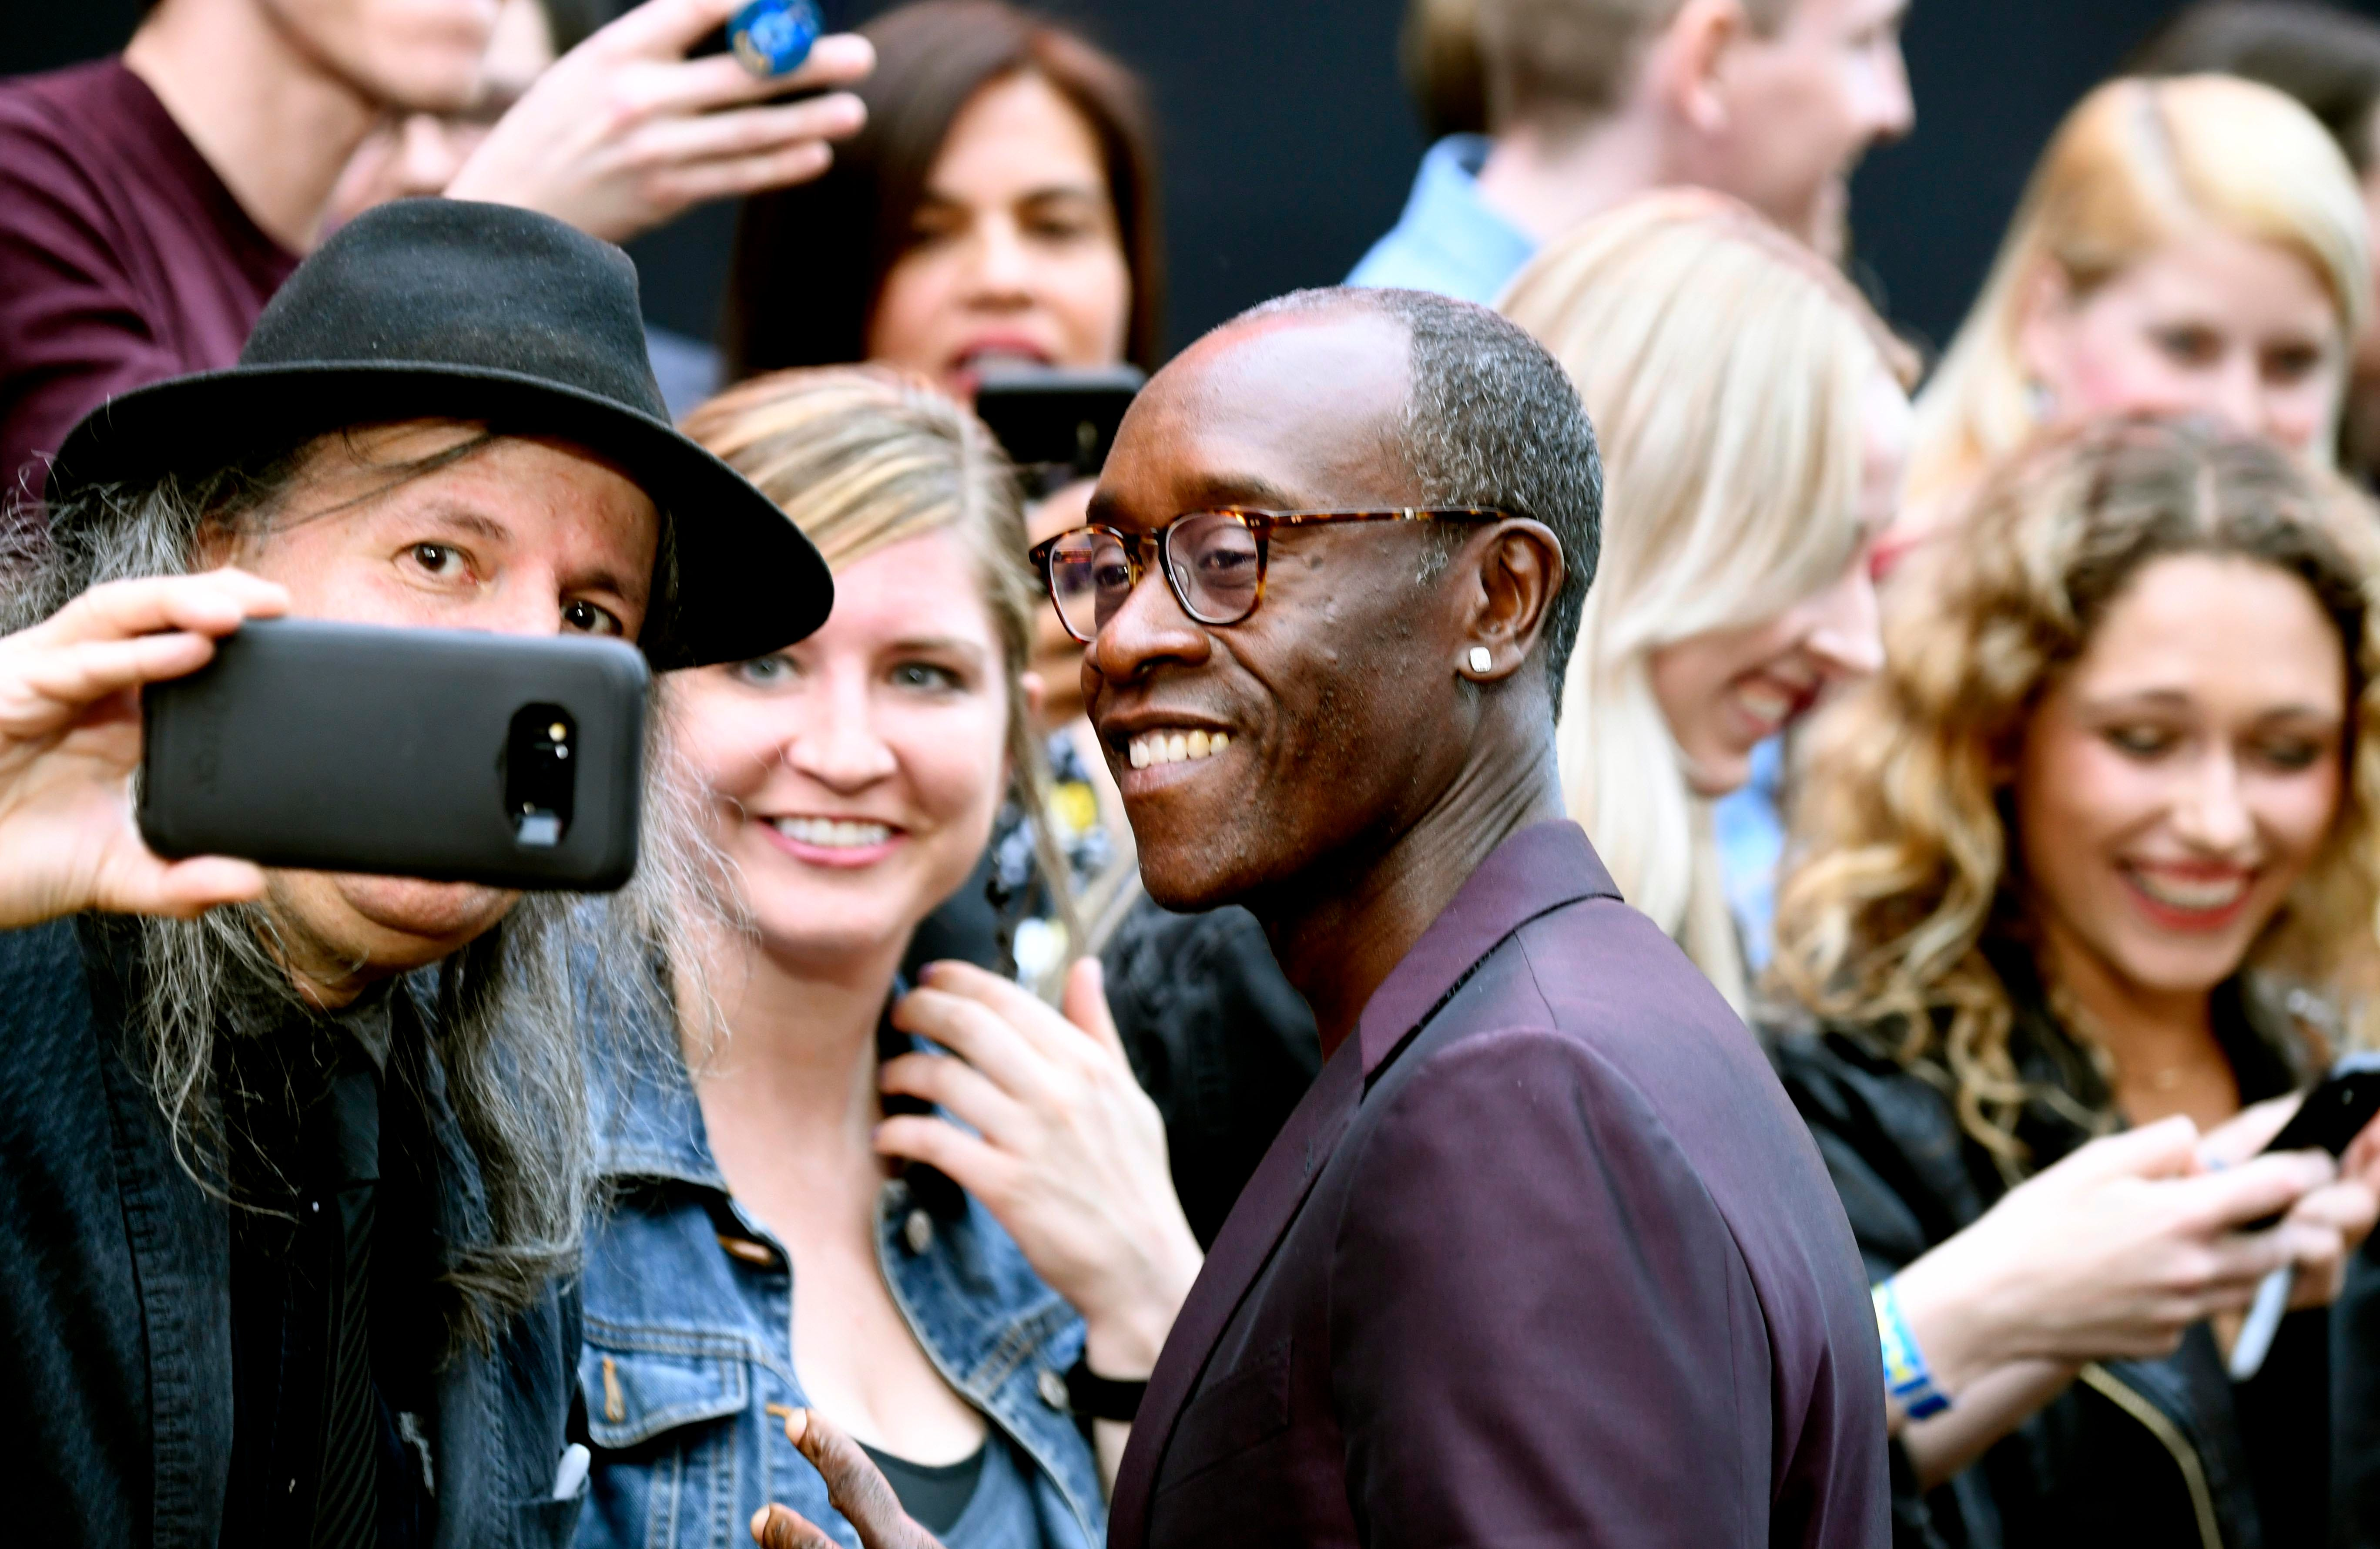 Httpwwwusatodaycompicture Gallerylifepeople20120910day In